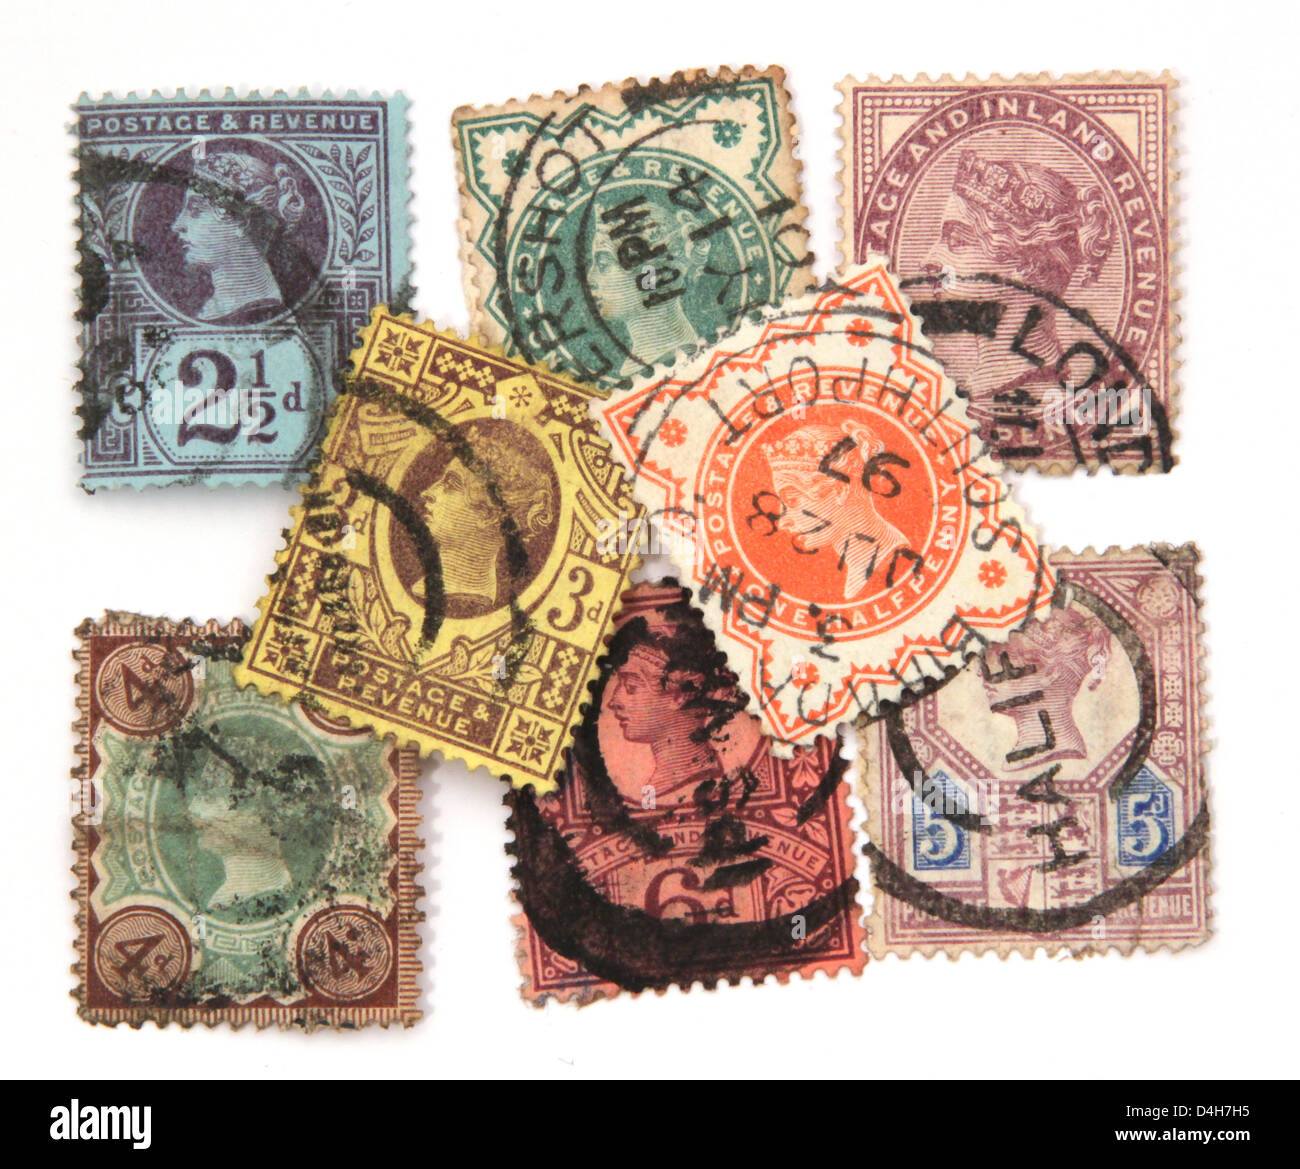 Assorted Victorian postage stamps on a white background. - Stock Image